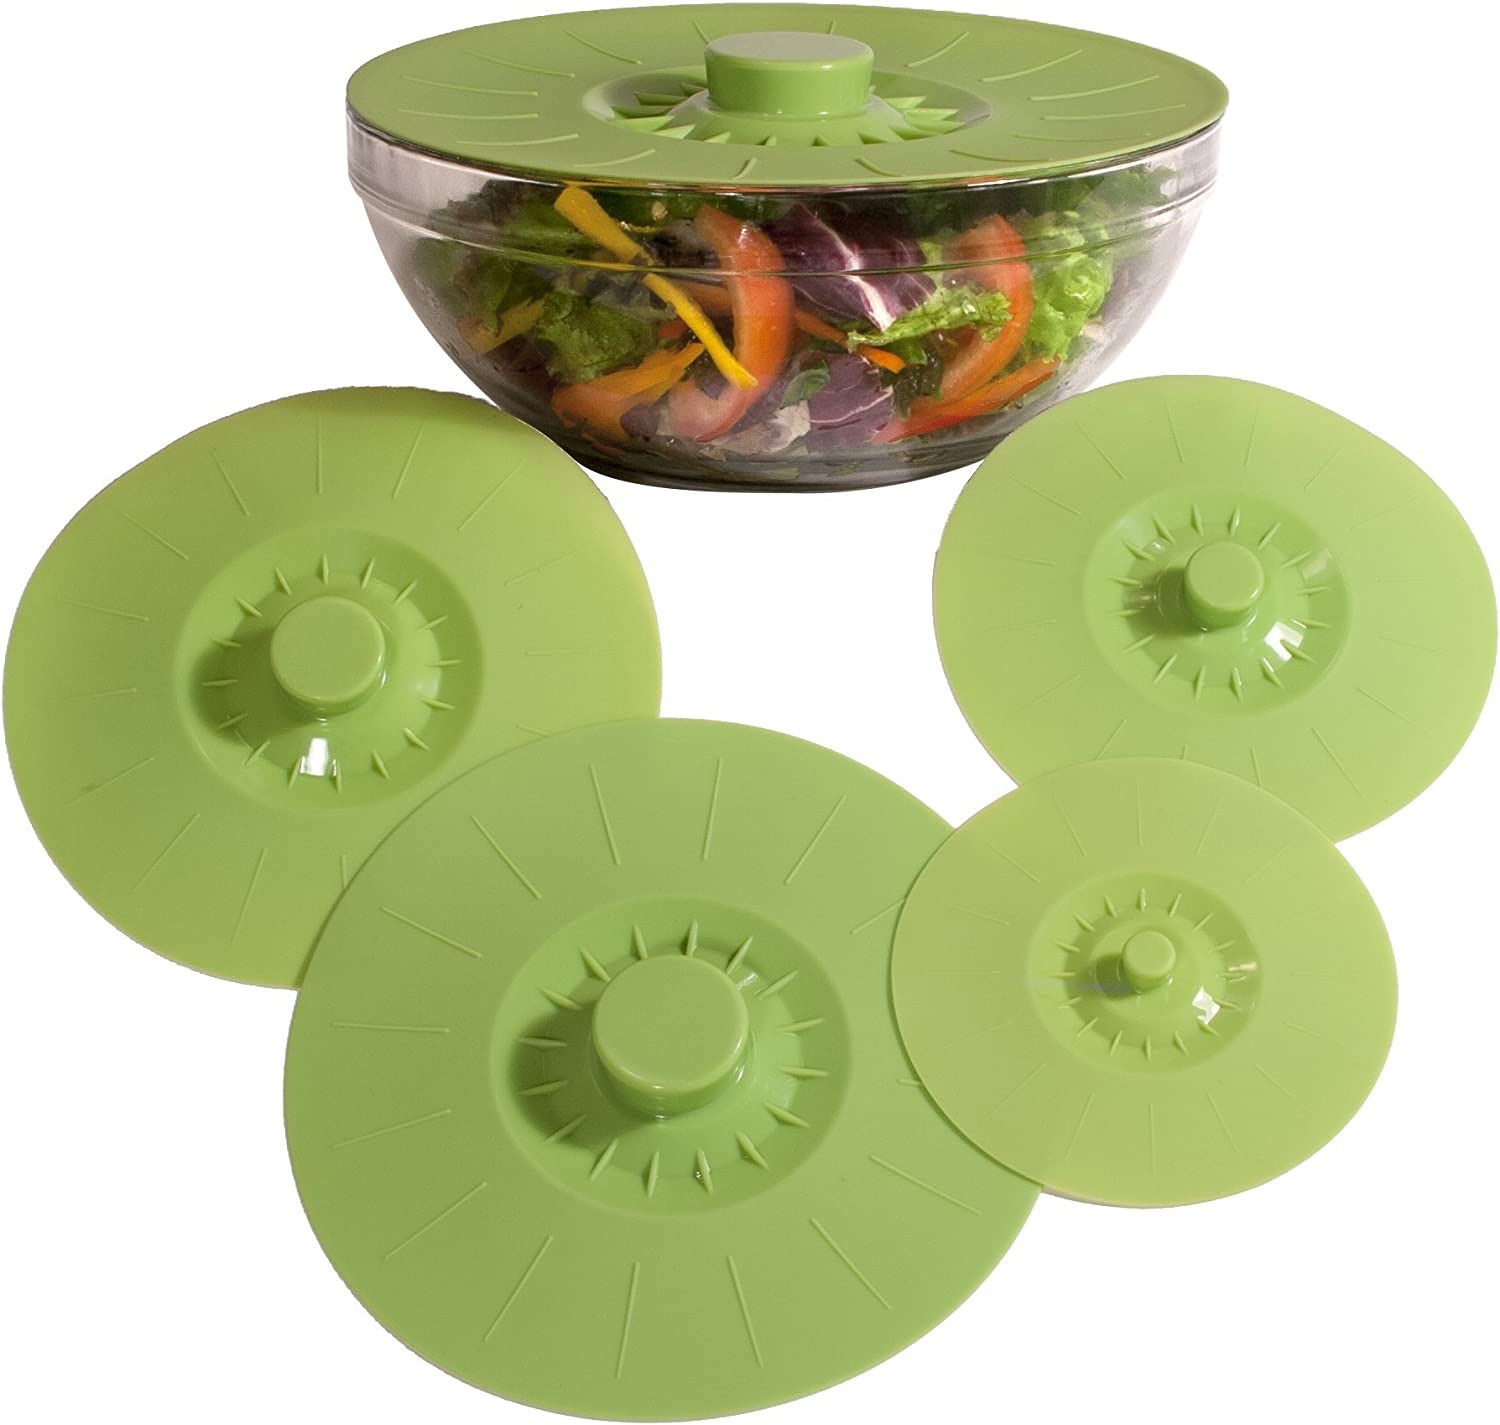 Silicone Bowl Lids Green Set of 5 Reusable Suction Seal Covers for Bowls, Pots, Cups. Food Safe. Natural grip, interlocking handles for easy use and storage.